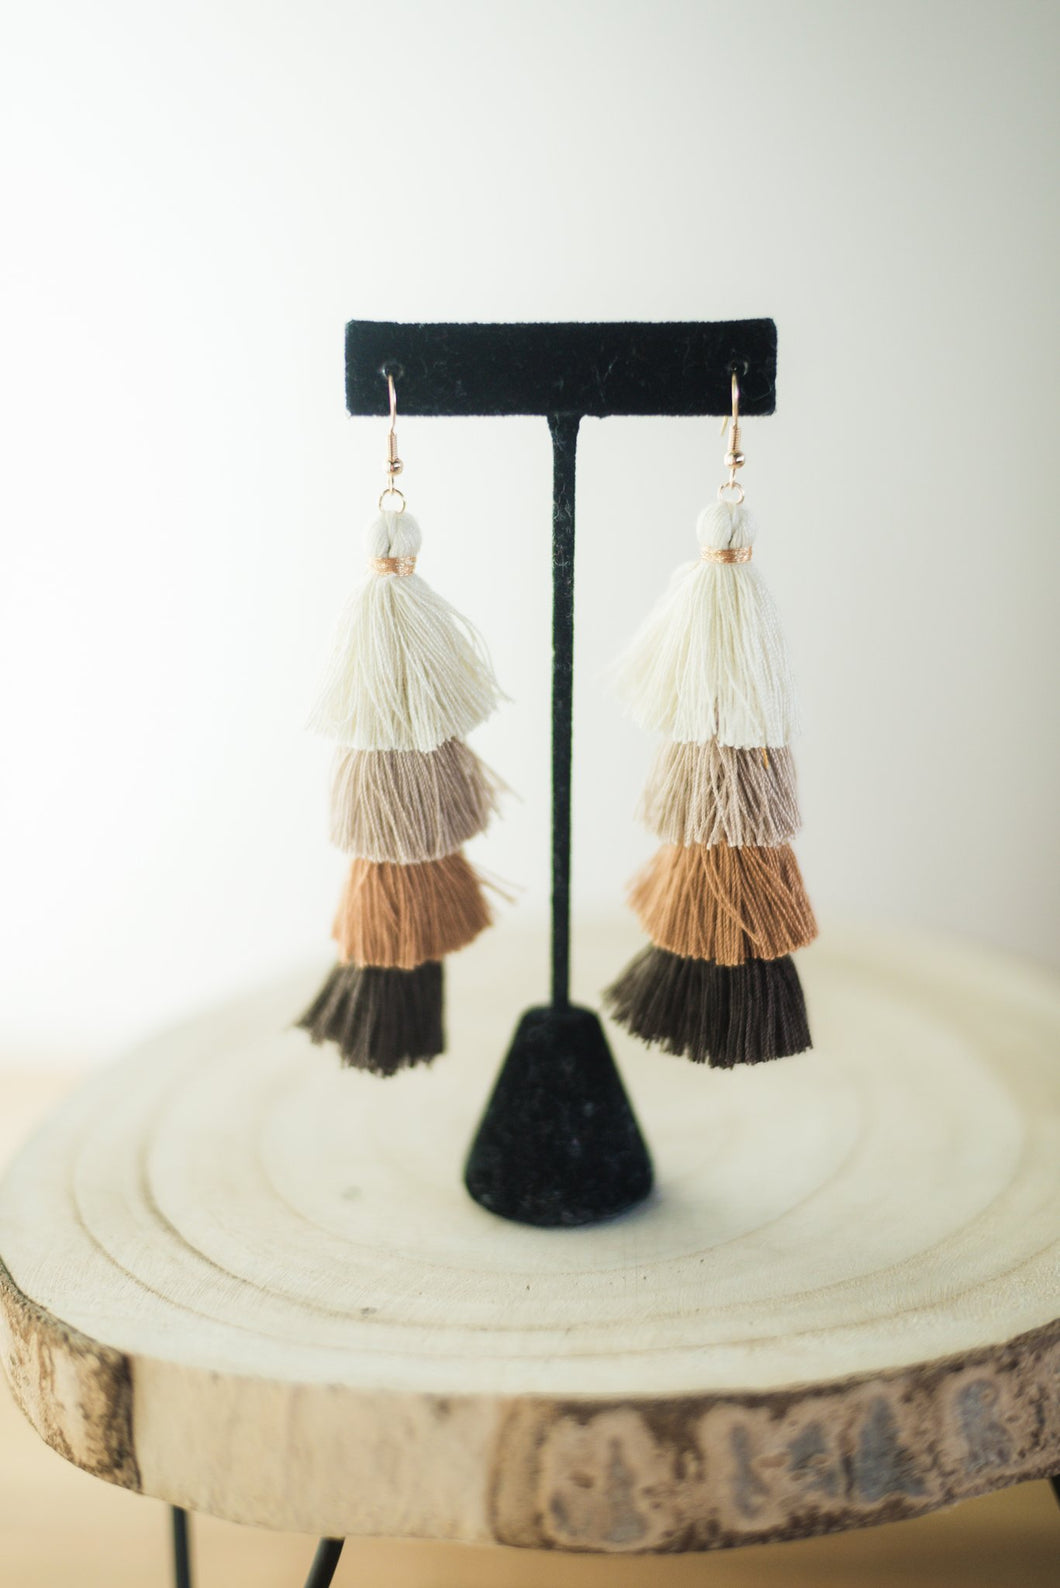 The Tiara Tassel Earrings